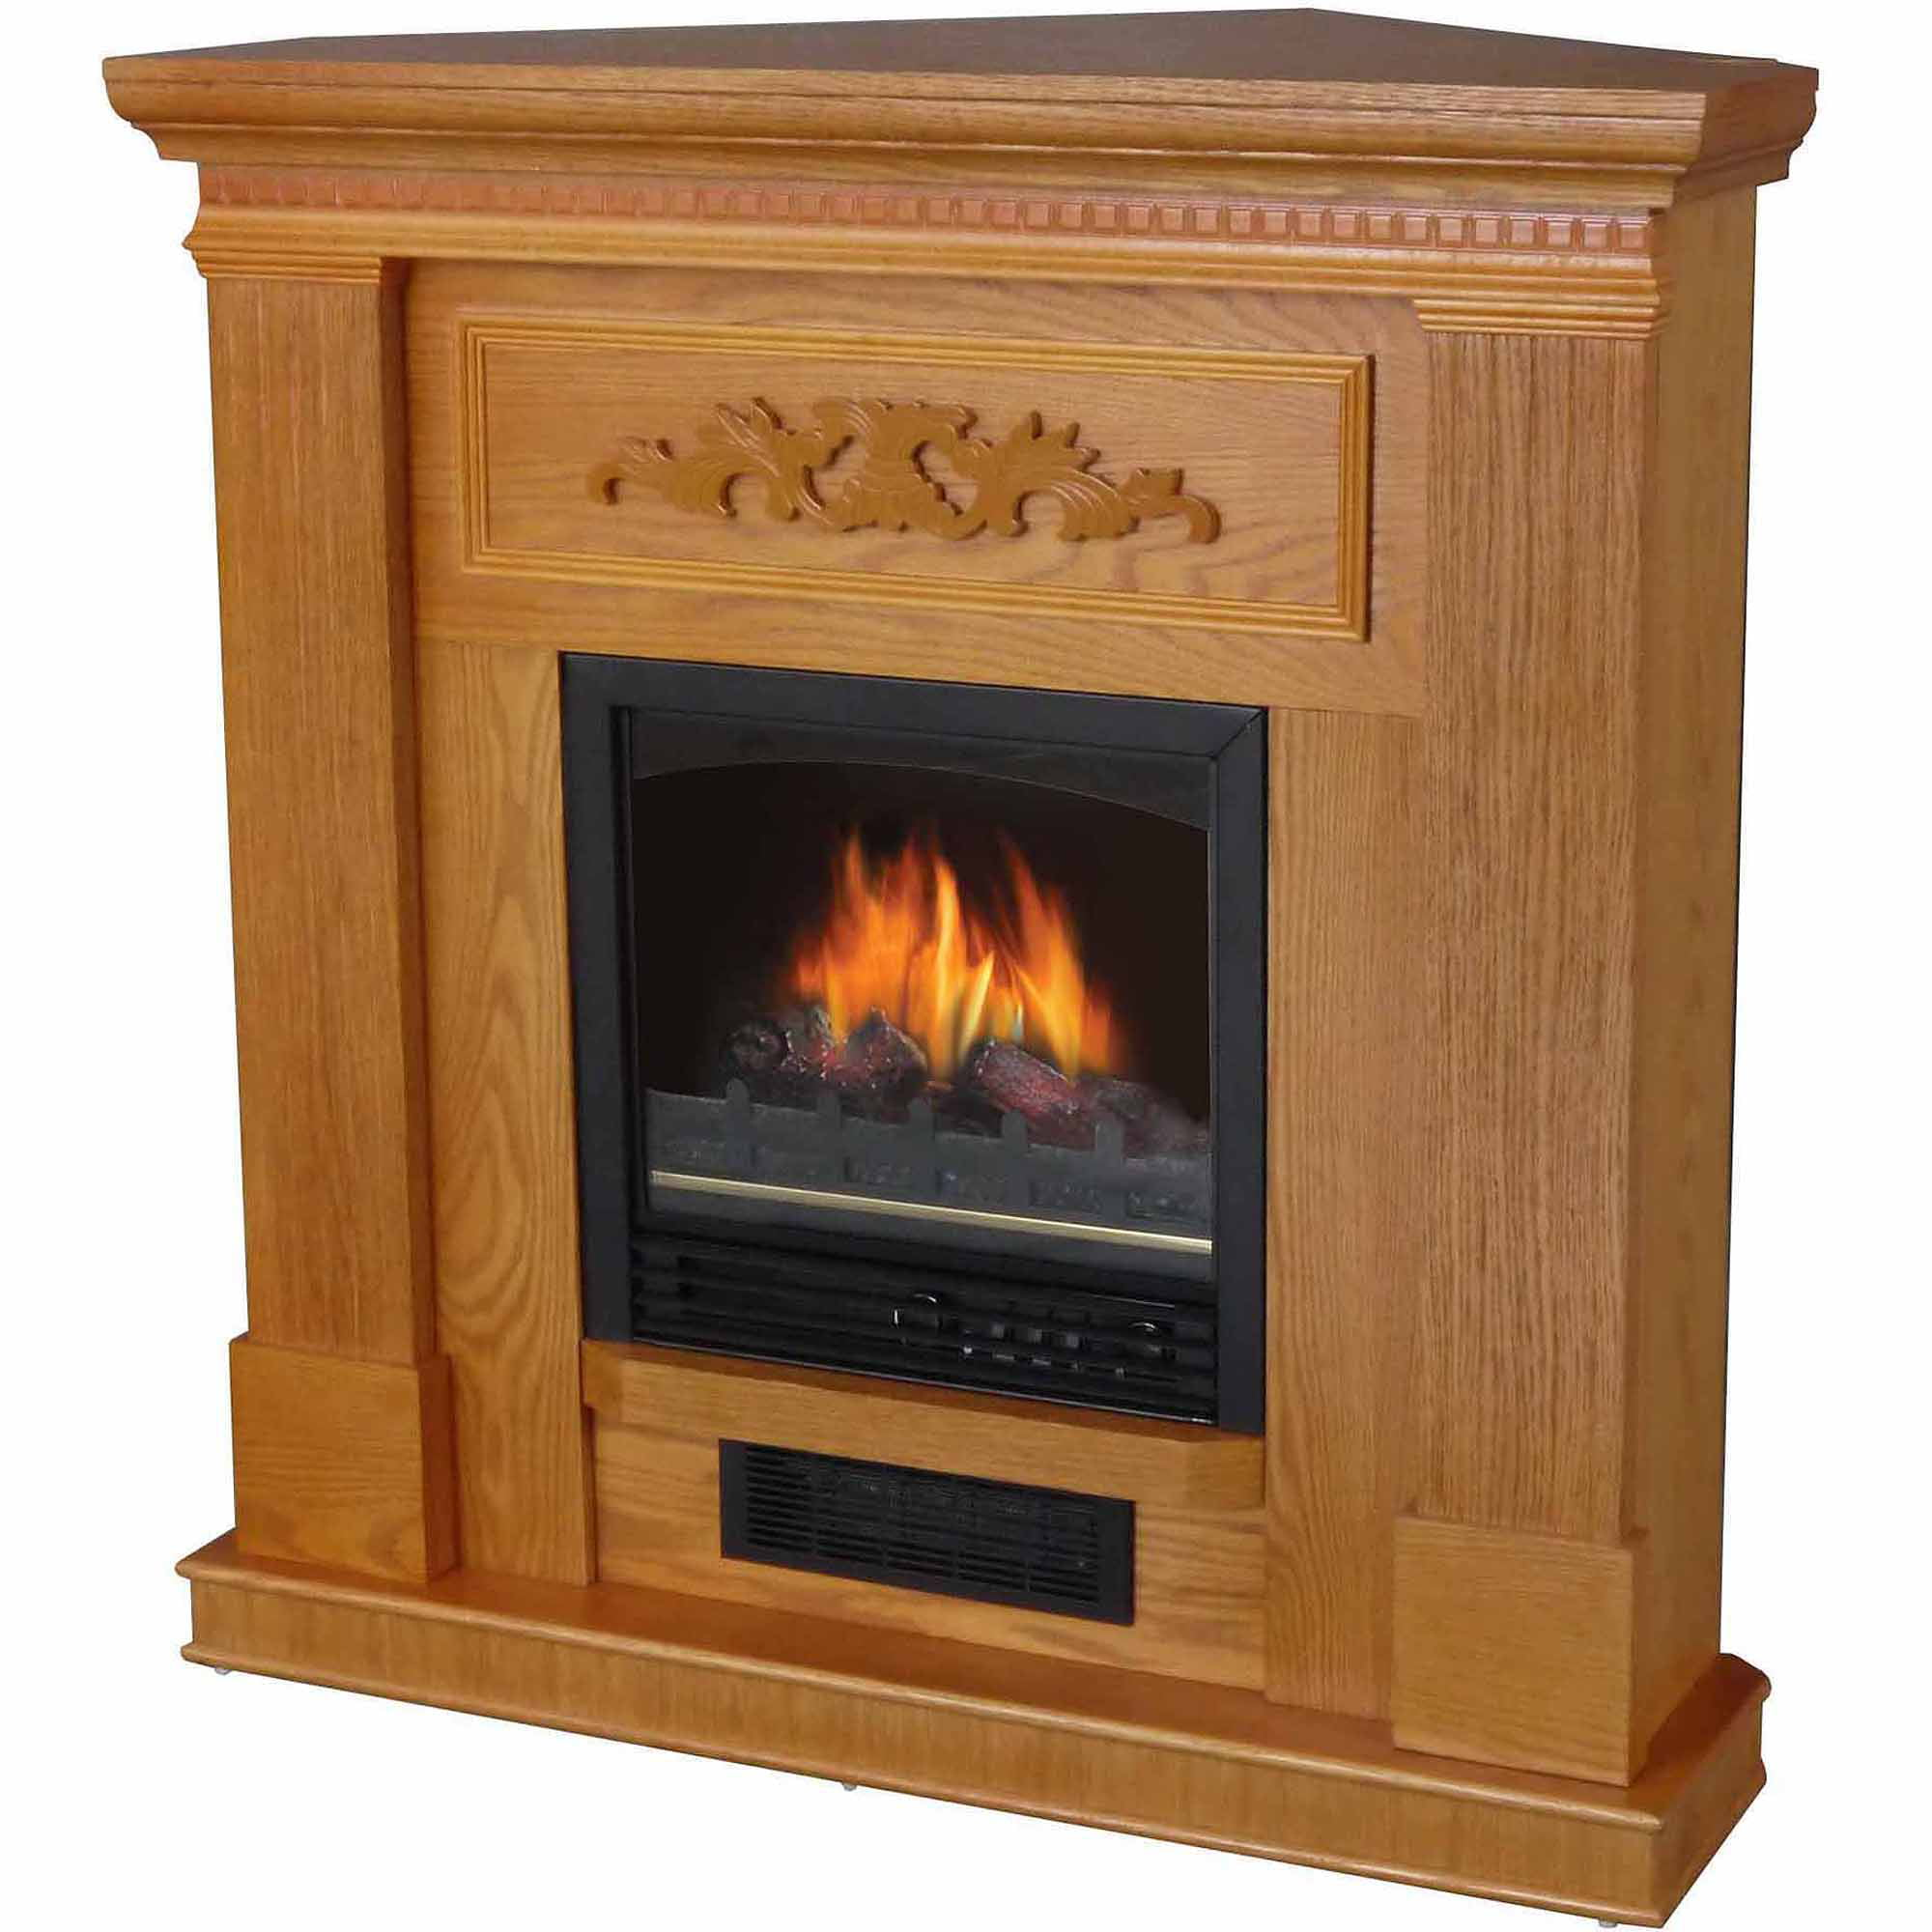 "Electric Fireplace with 38"" Mantle, Oak by Electric Fireplaces"